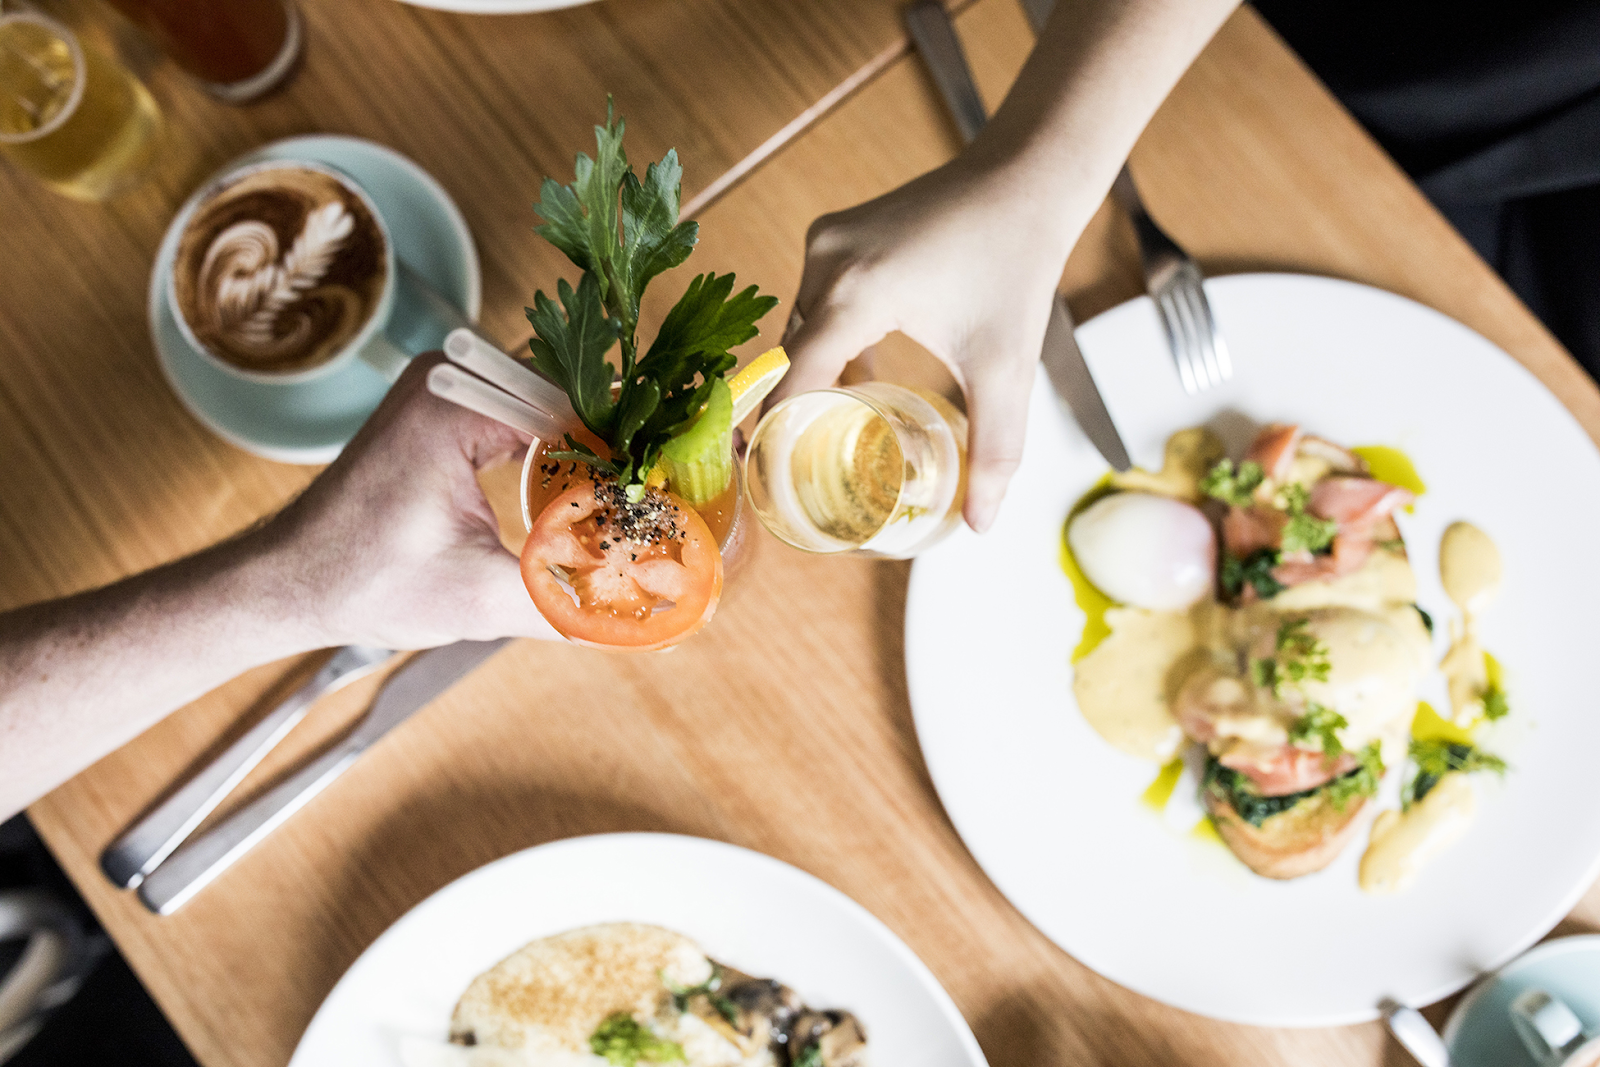 Cheering Bloody Mary and champagne over brunch dishes